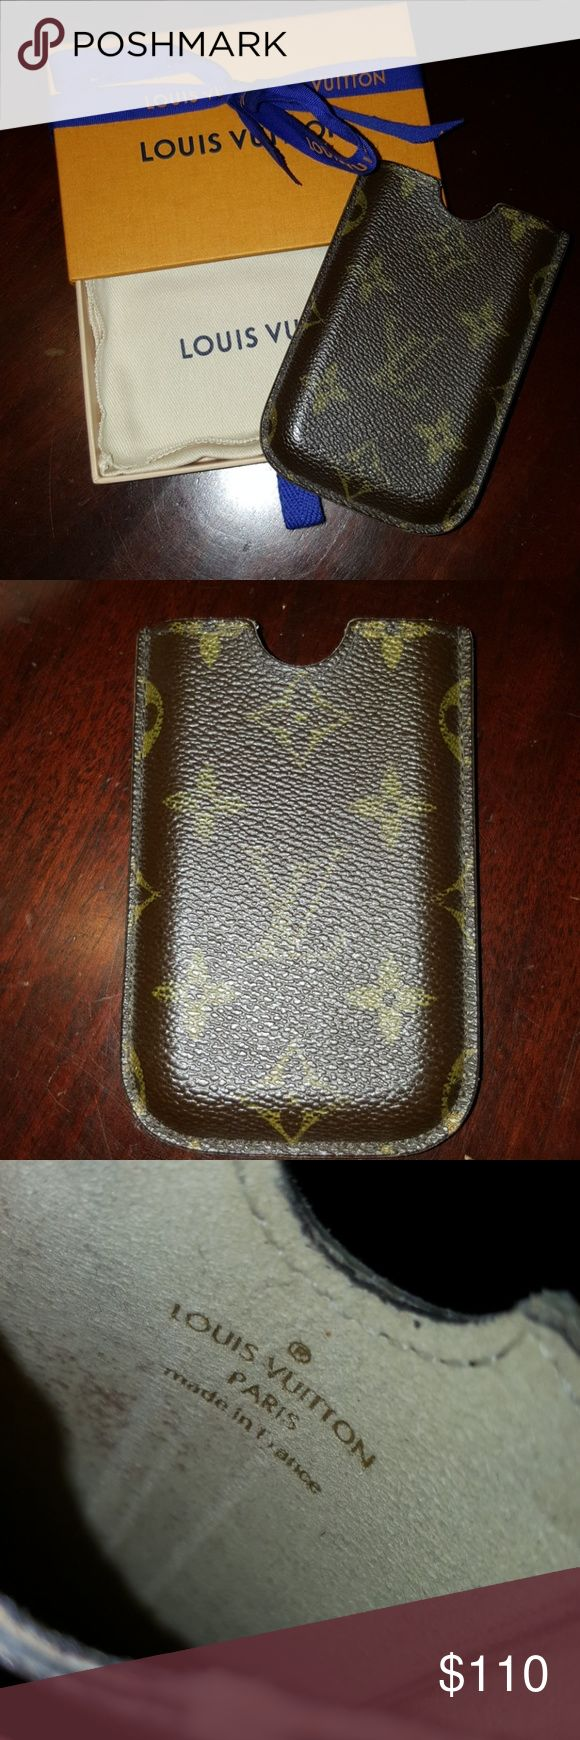 Louis Vuitton 3G phone case. Great condition. Comes with Box, ribbon and dust bag. I used it for business cards! Louis Vuitton Bags Wallets